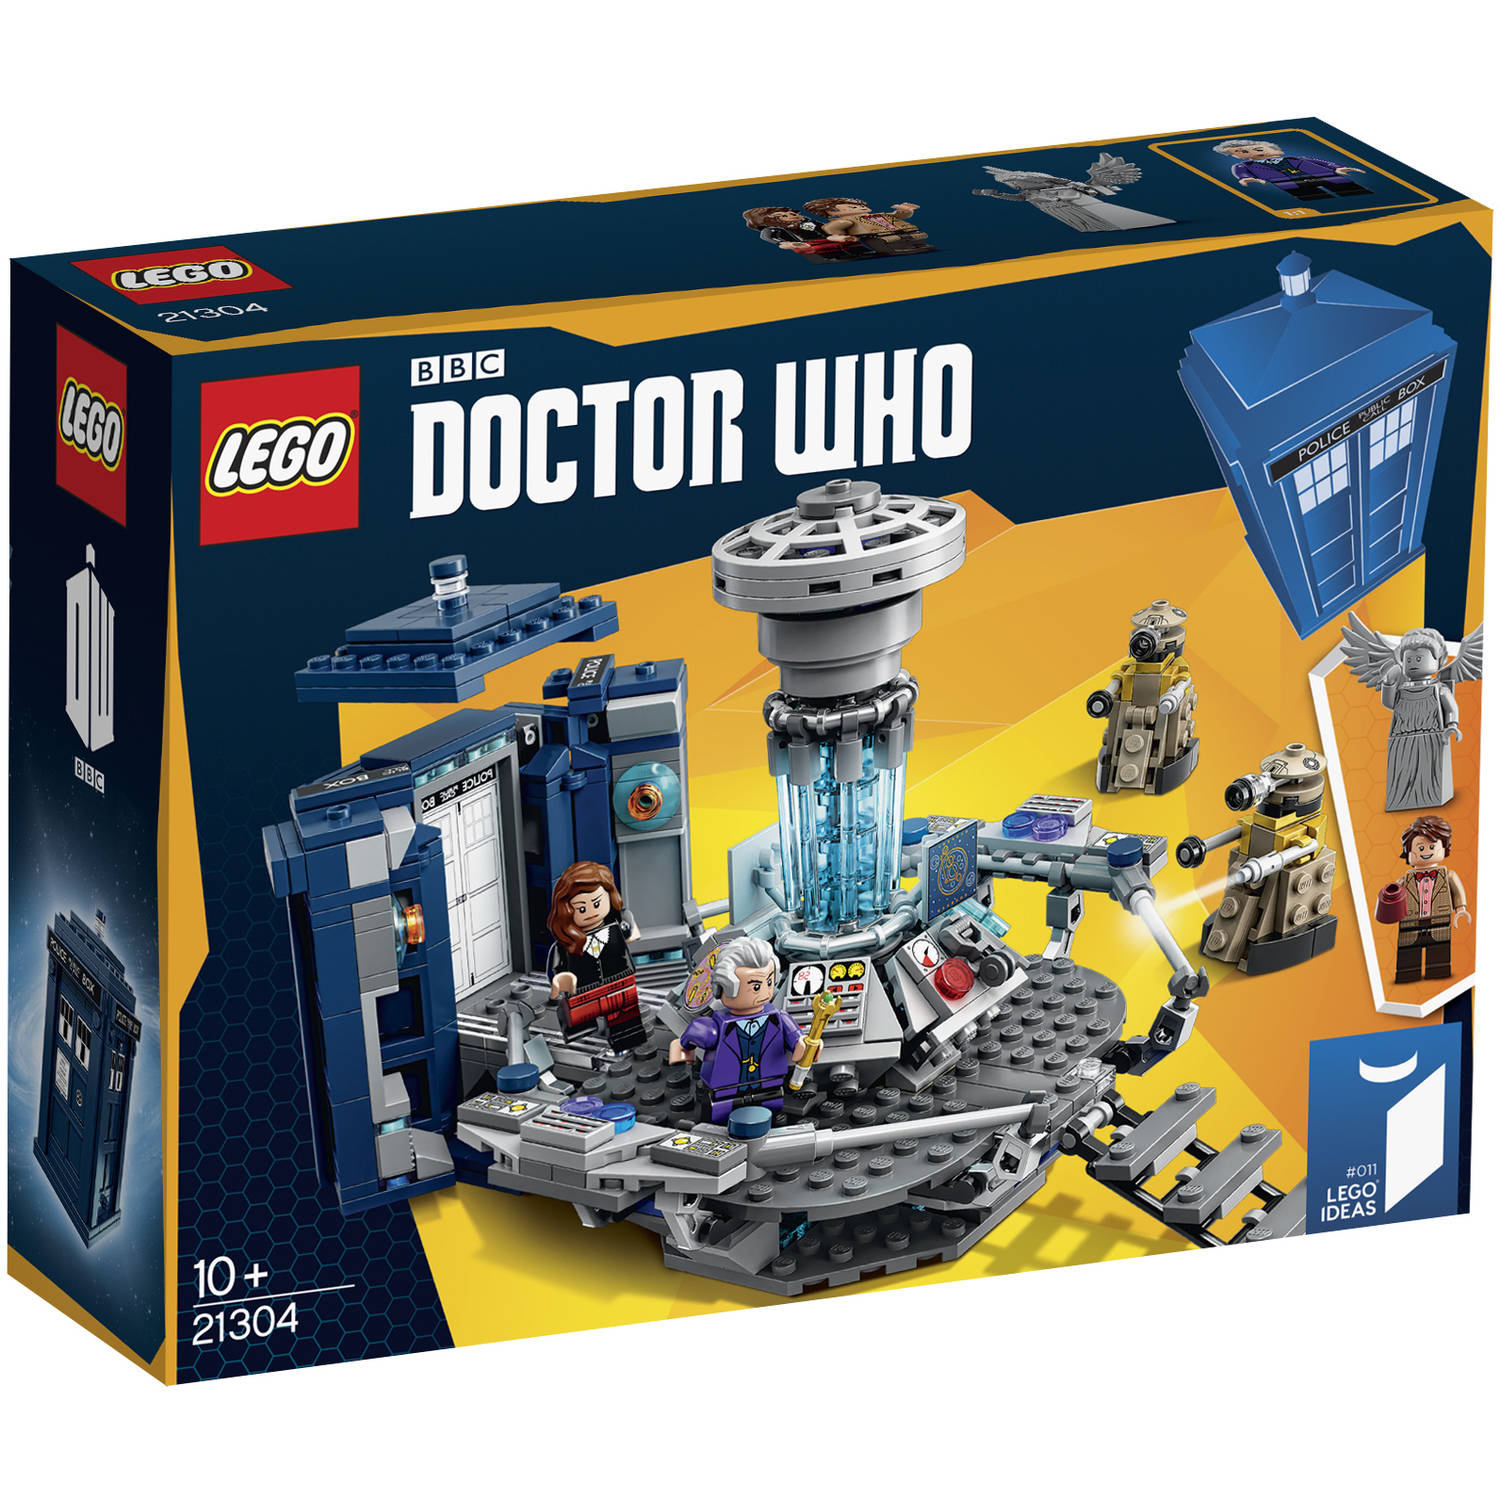 LEGO Doctor Who TARDIS Set 21304  sc 1 st  Walmart & LEGO Doctor Who TARDIS Set 21304 - Walmart.com